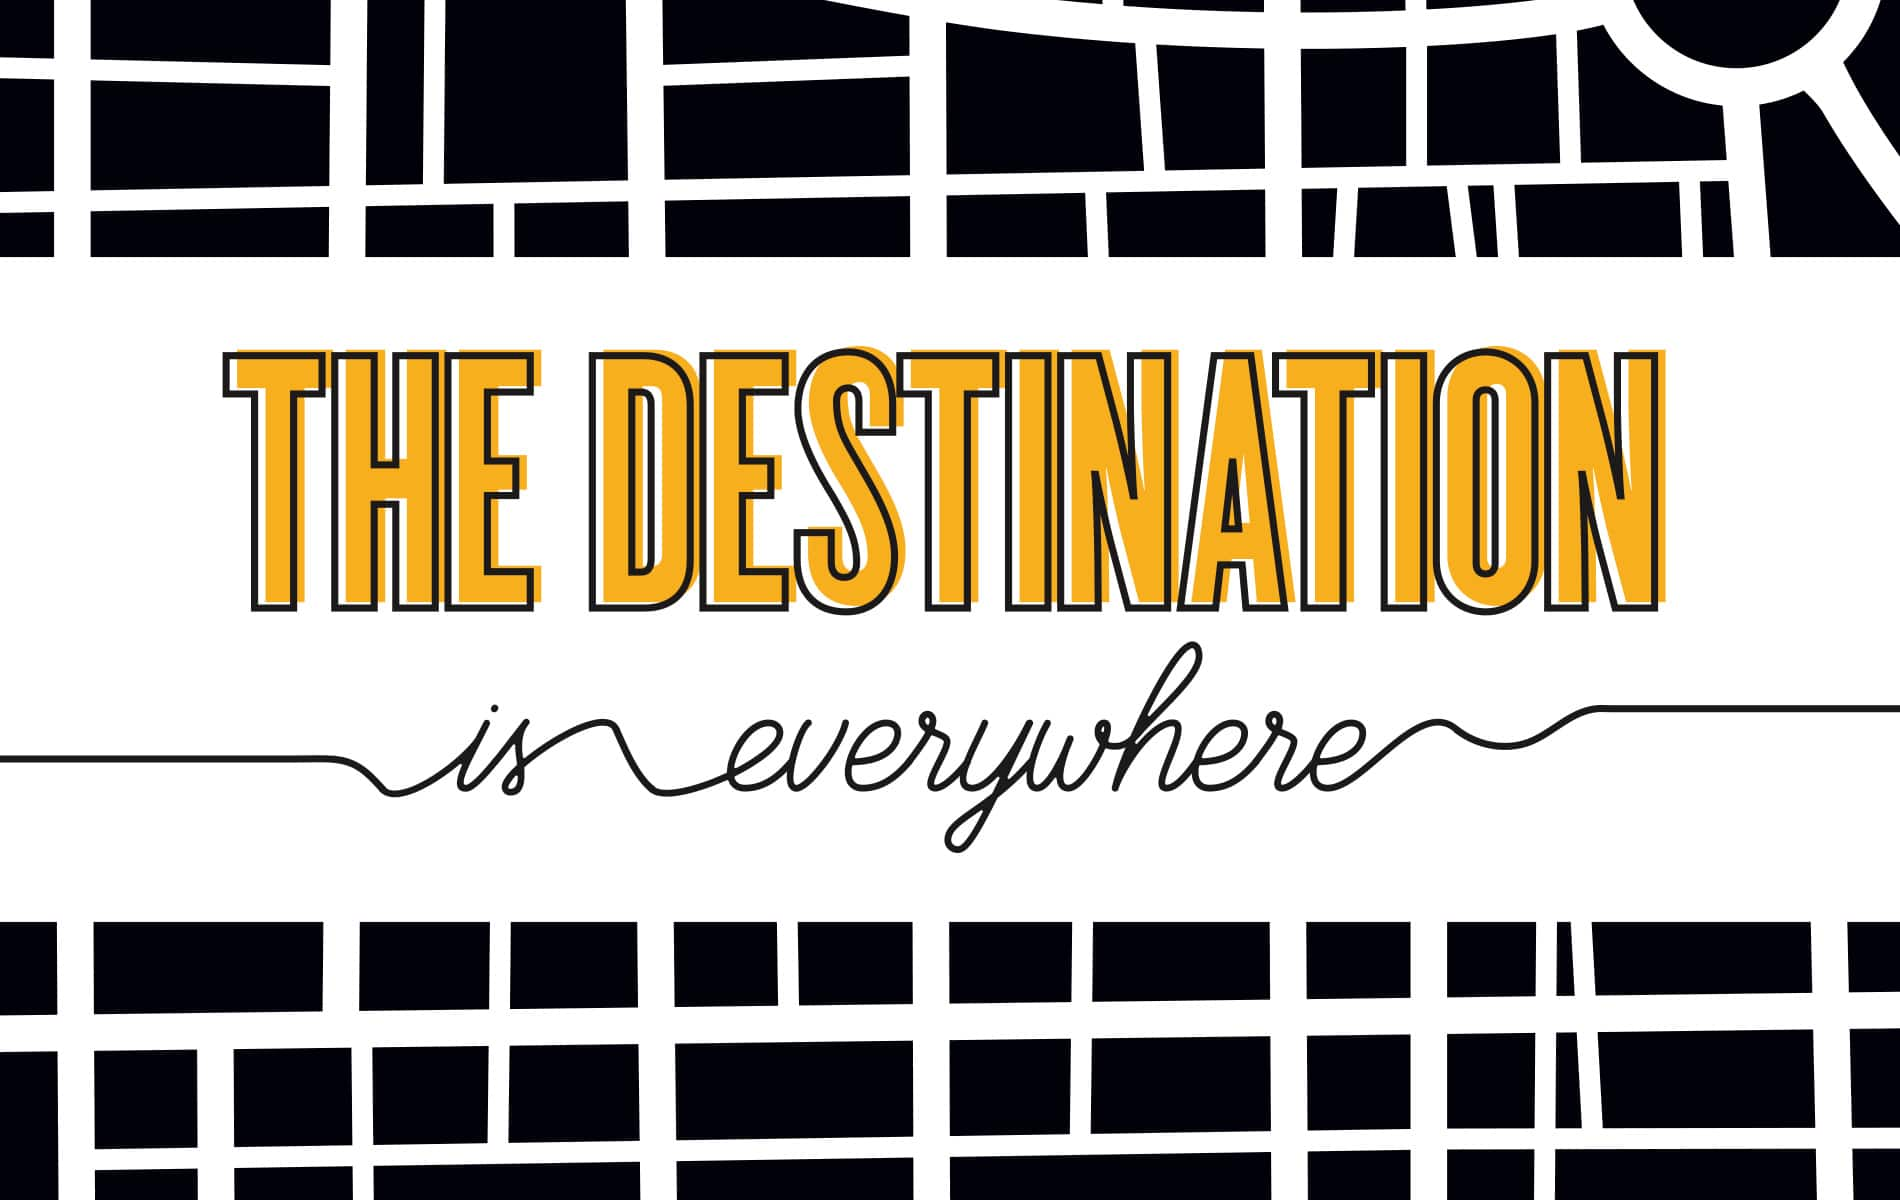 Greg Cayea, The Destination is Everywhere, VIE Magazine, Destination Travel Issue, February 2018